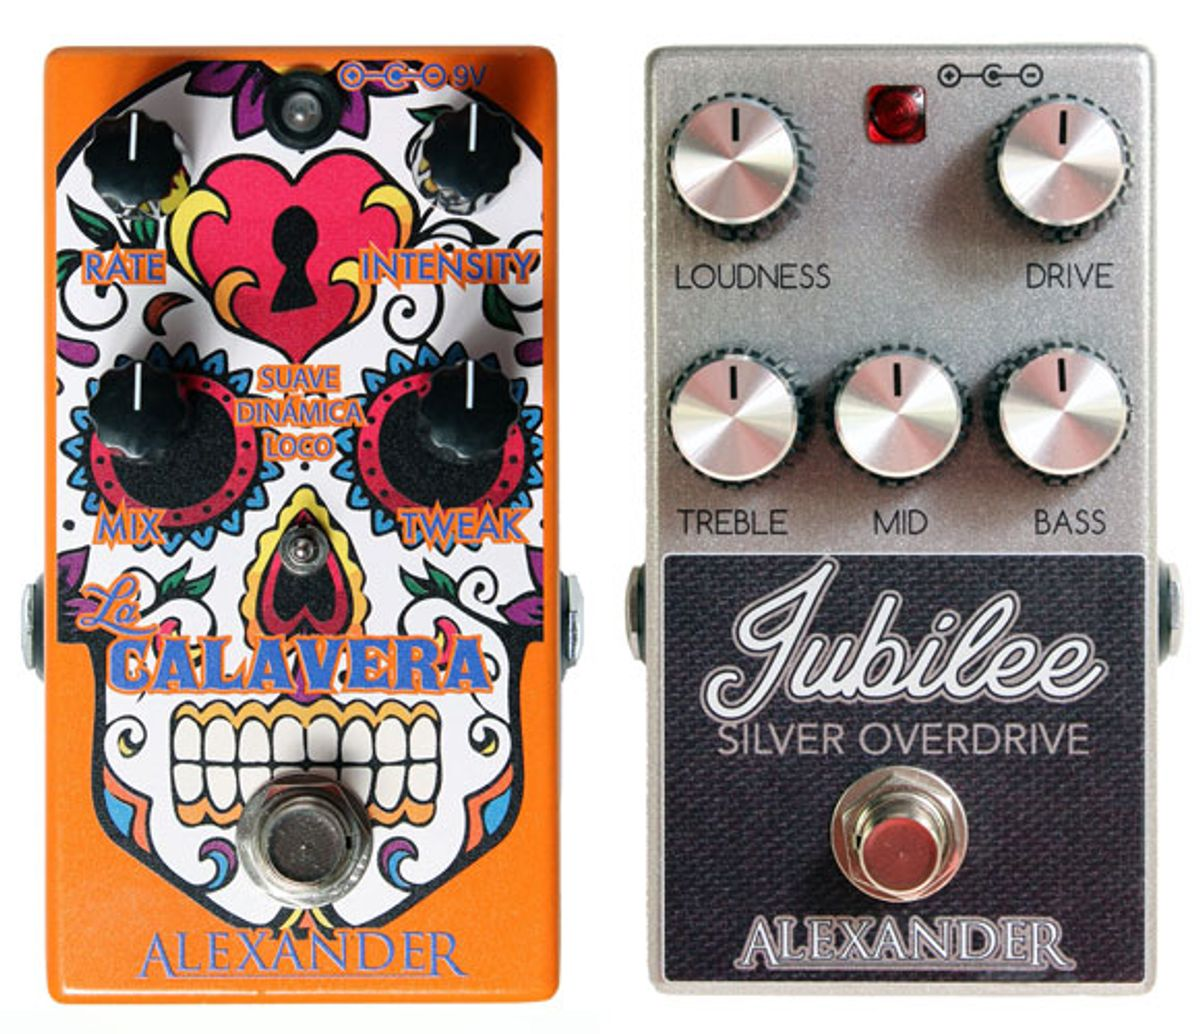 Alexander Pedals Introduces the La Calavera and Jubilee Silver Overdrive